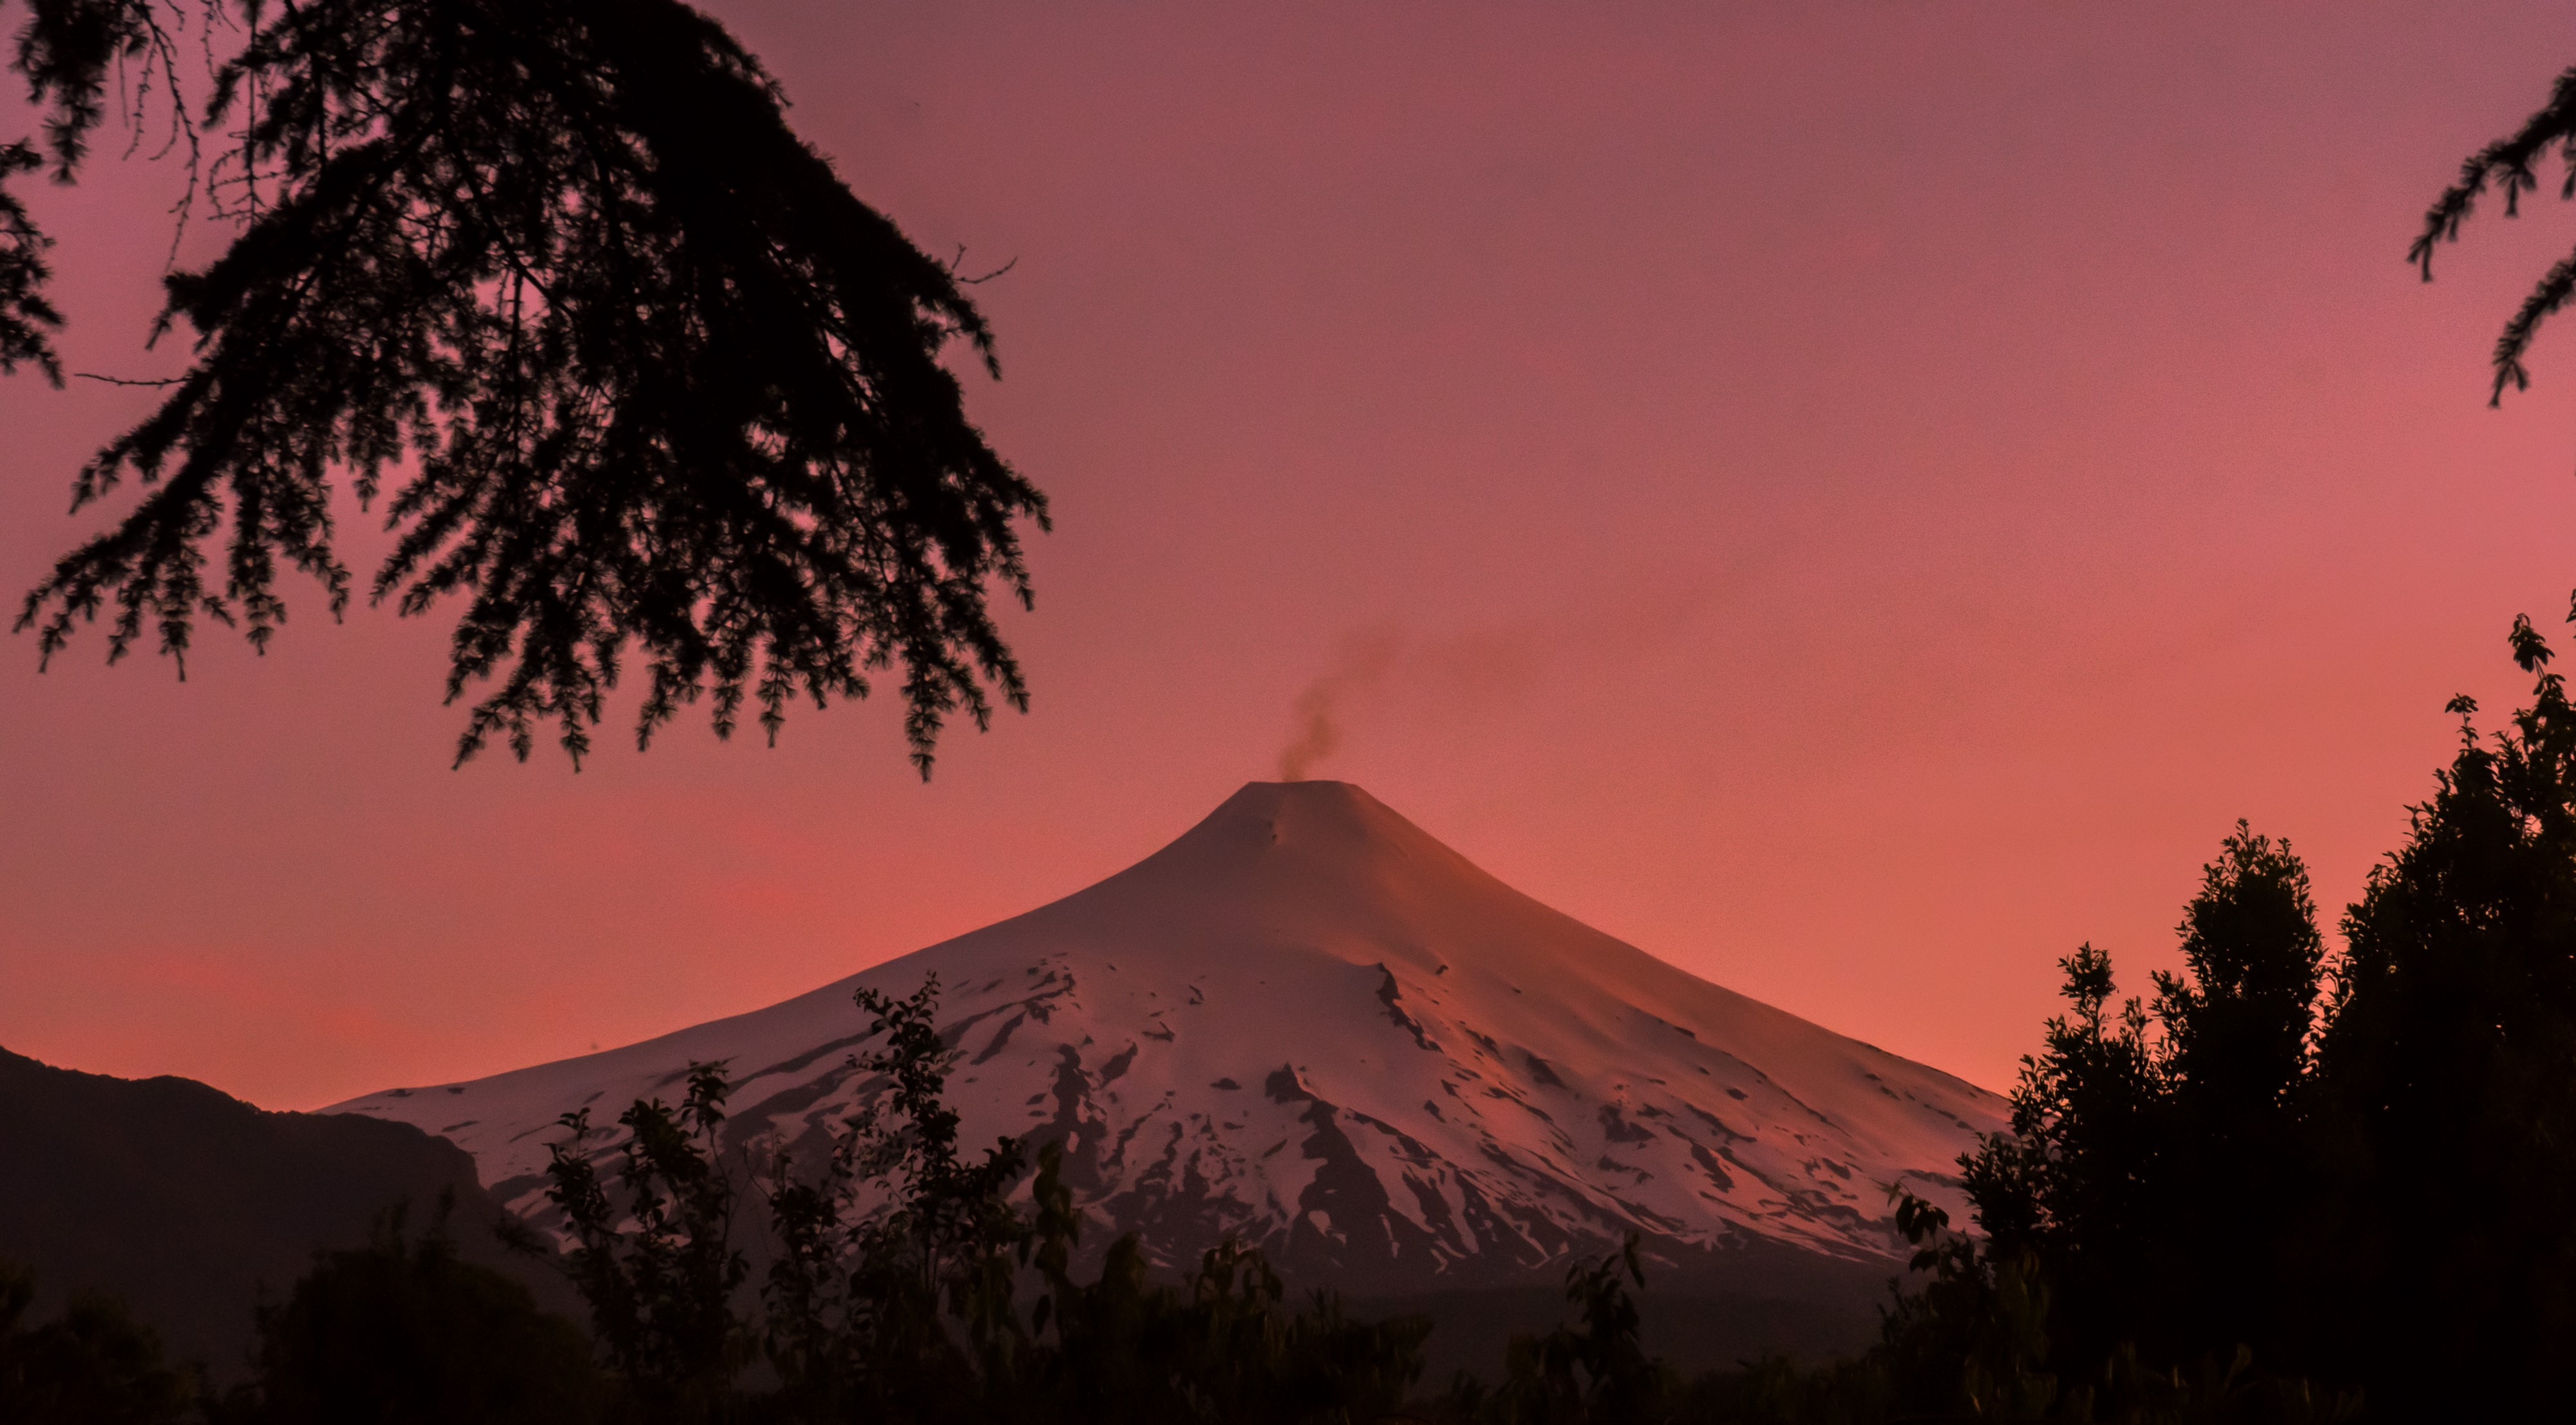 A snowy volcano smoking slightly in the orange of a sunset (or sunrise).